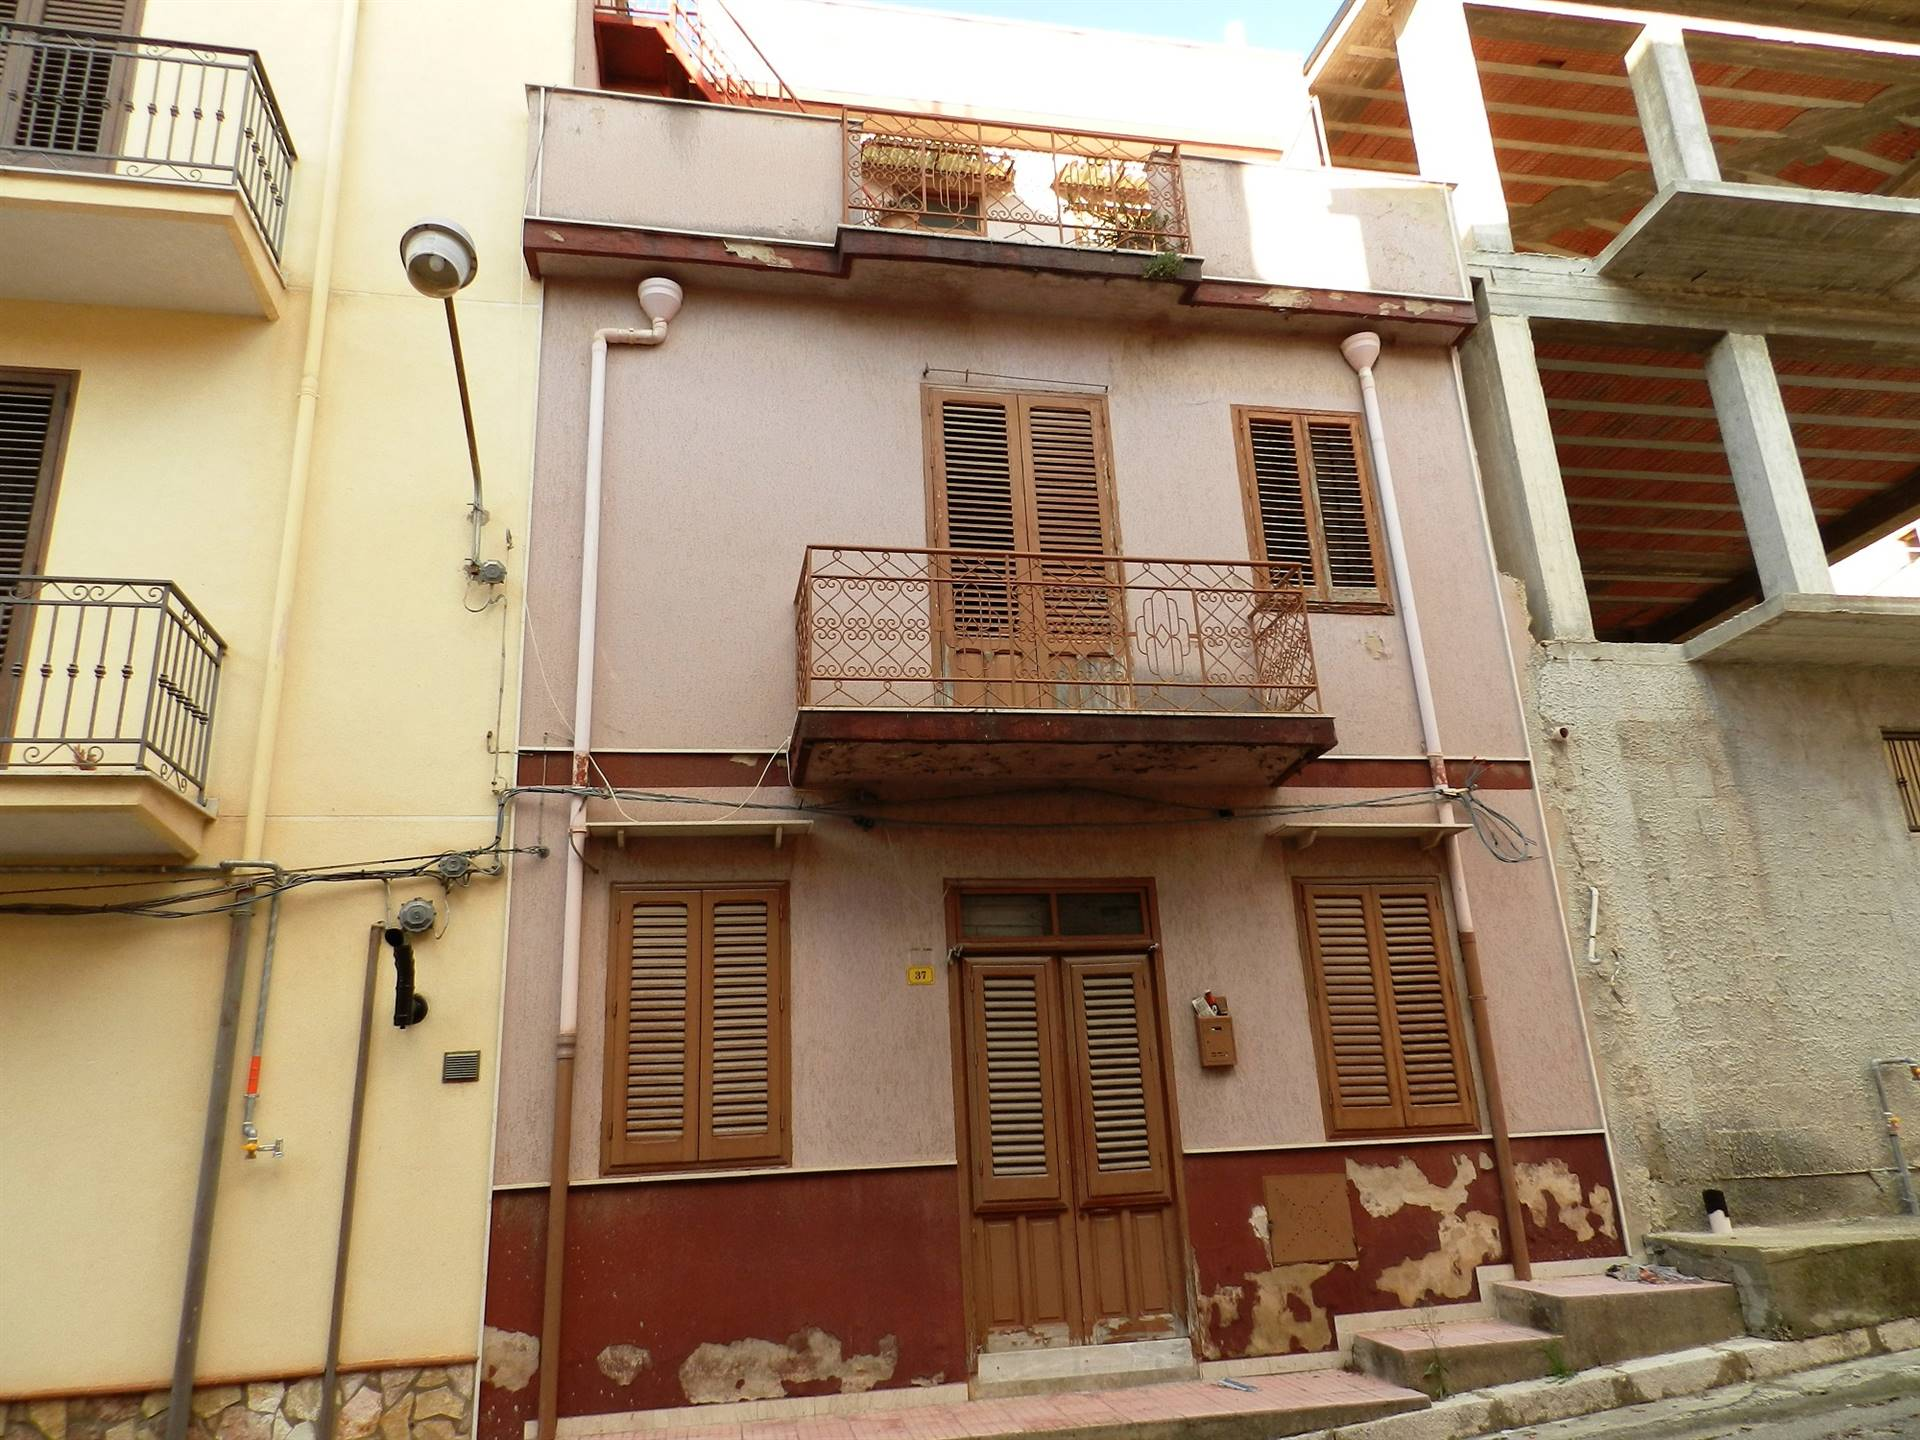 BORGETTO, Detached house for sale of 120 Sq. mt., Habitable, Energetic class: G, Epi: 175 kwh/m2 year, composed by: 4 Rooms, Kitchenette, , 2